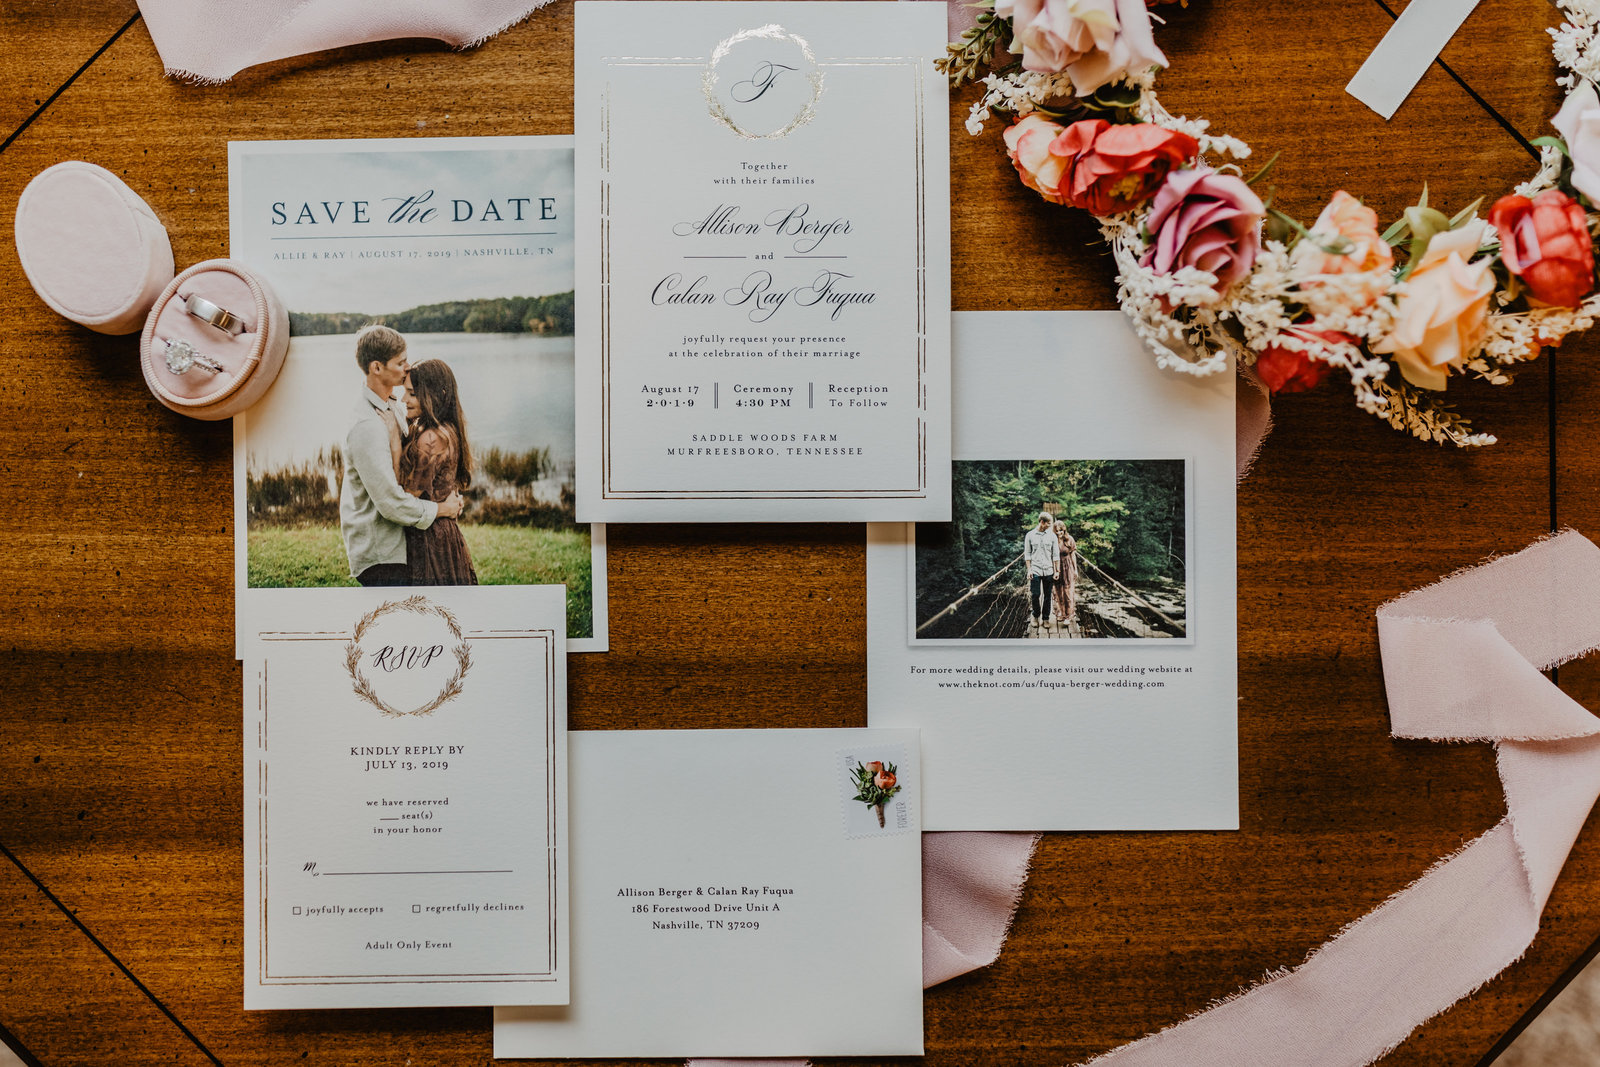 With touches of blush and pinks this invitation suite was prefect for her wedding at Saddle Woods Farm